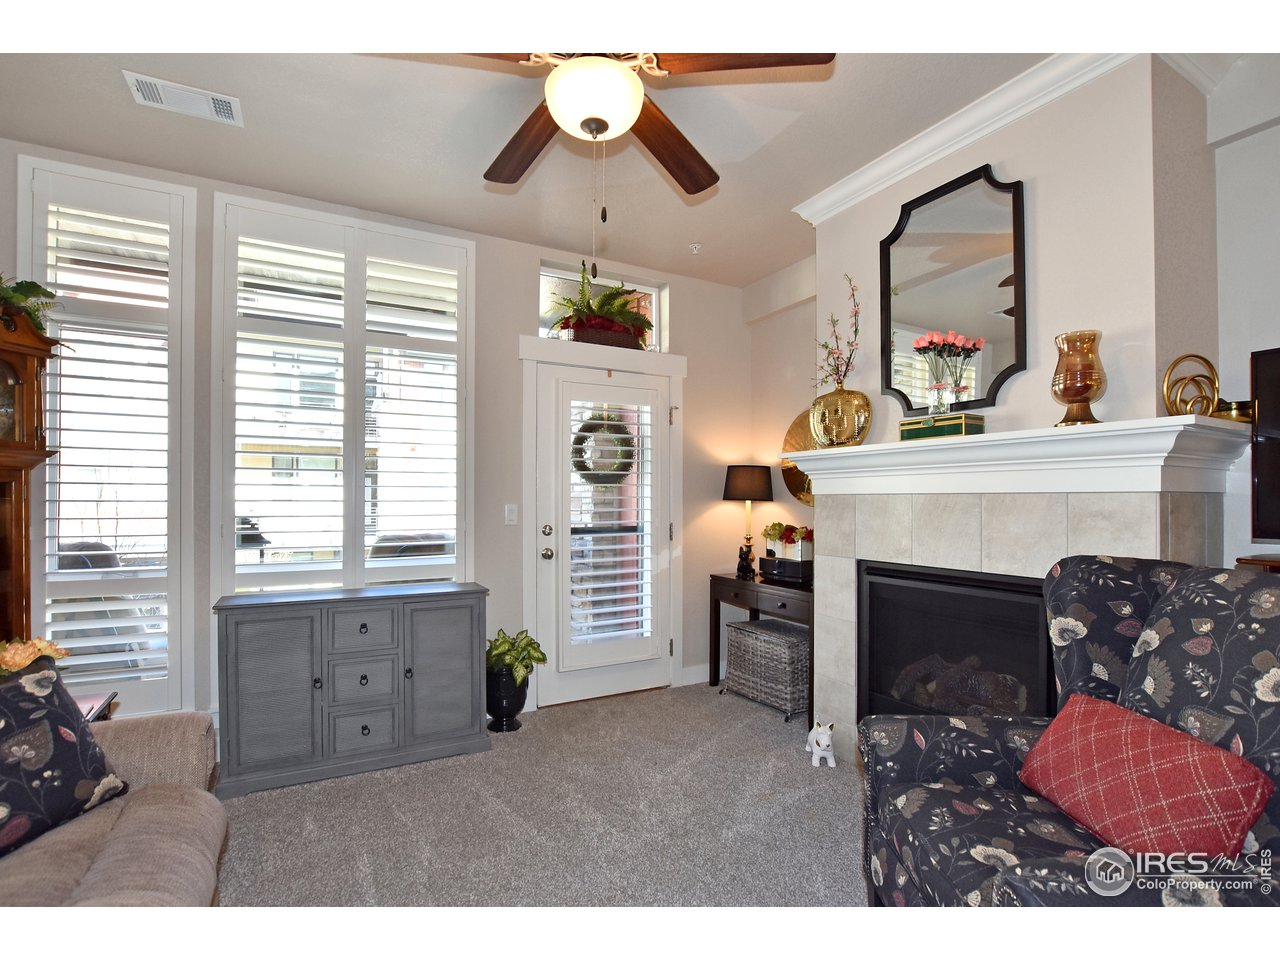 Brand new split tilt feature Plantation shutters throughout the entire unit! Privacy without losing light